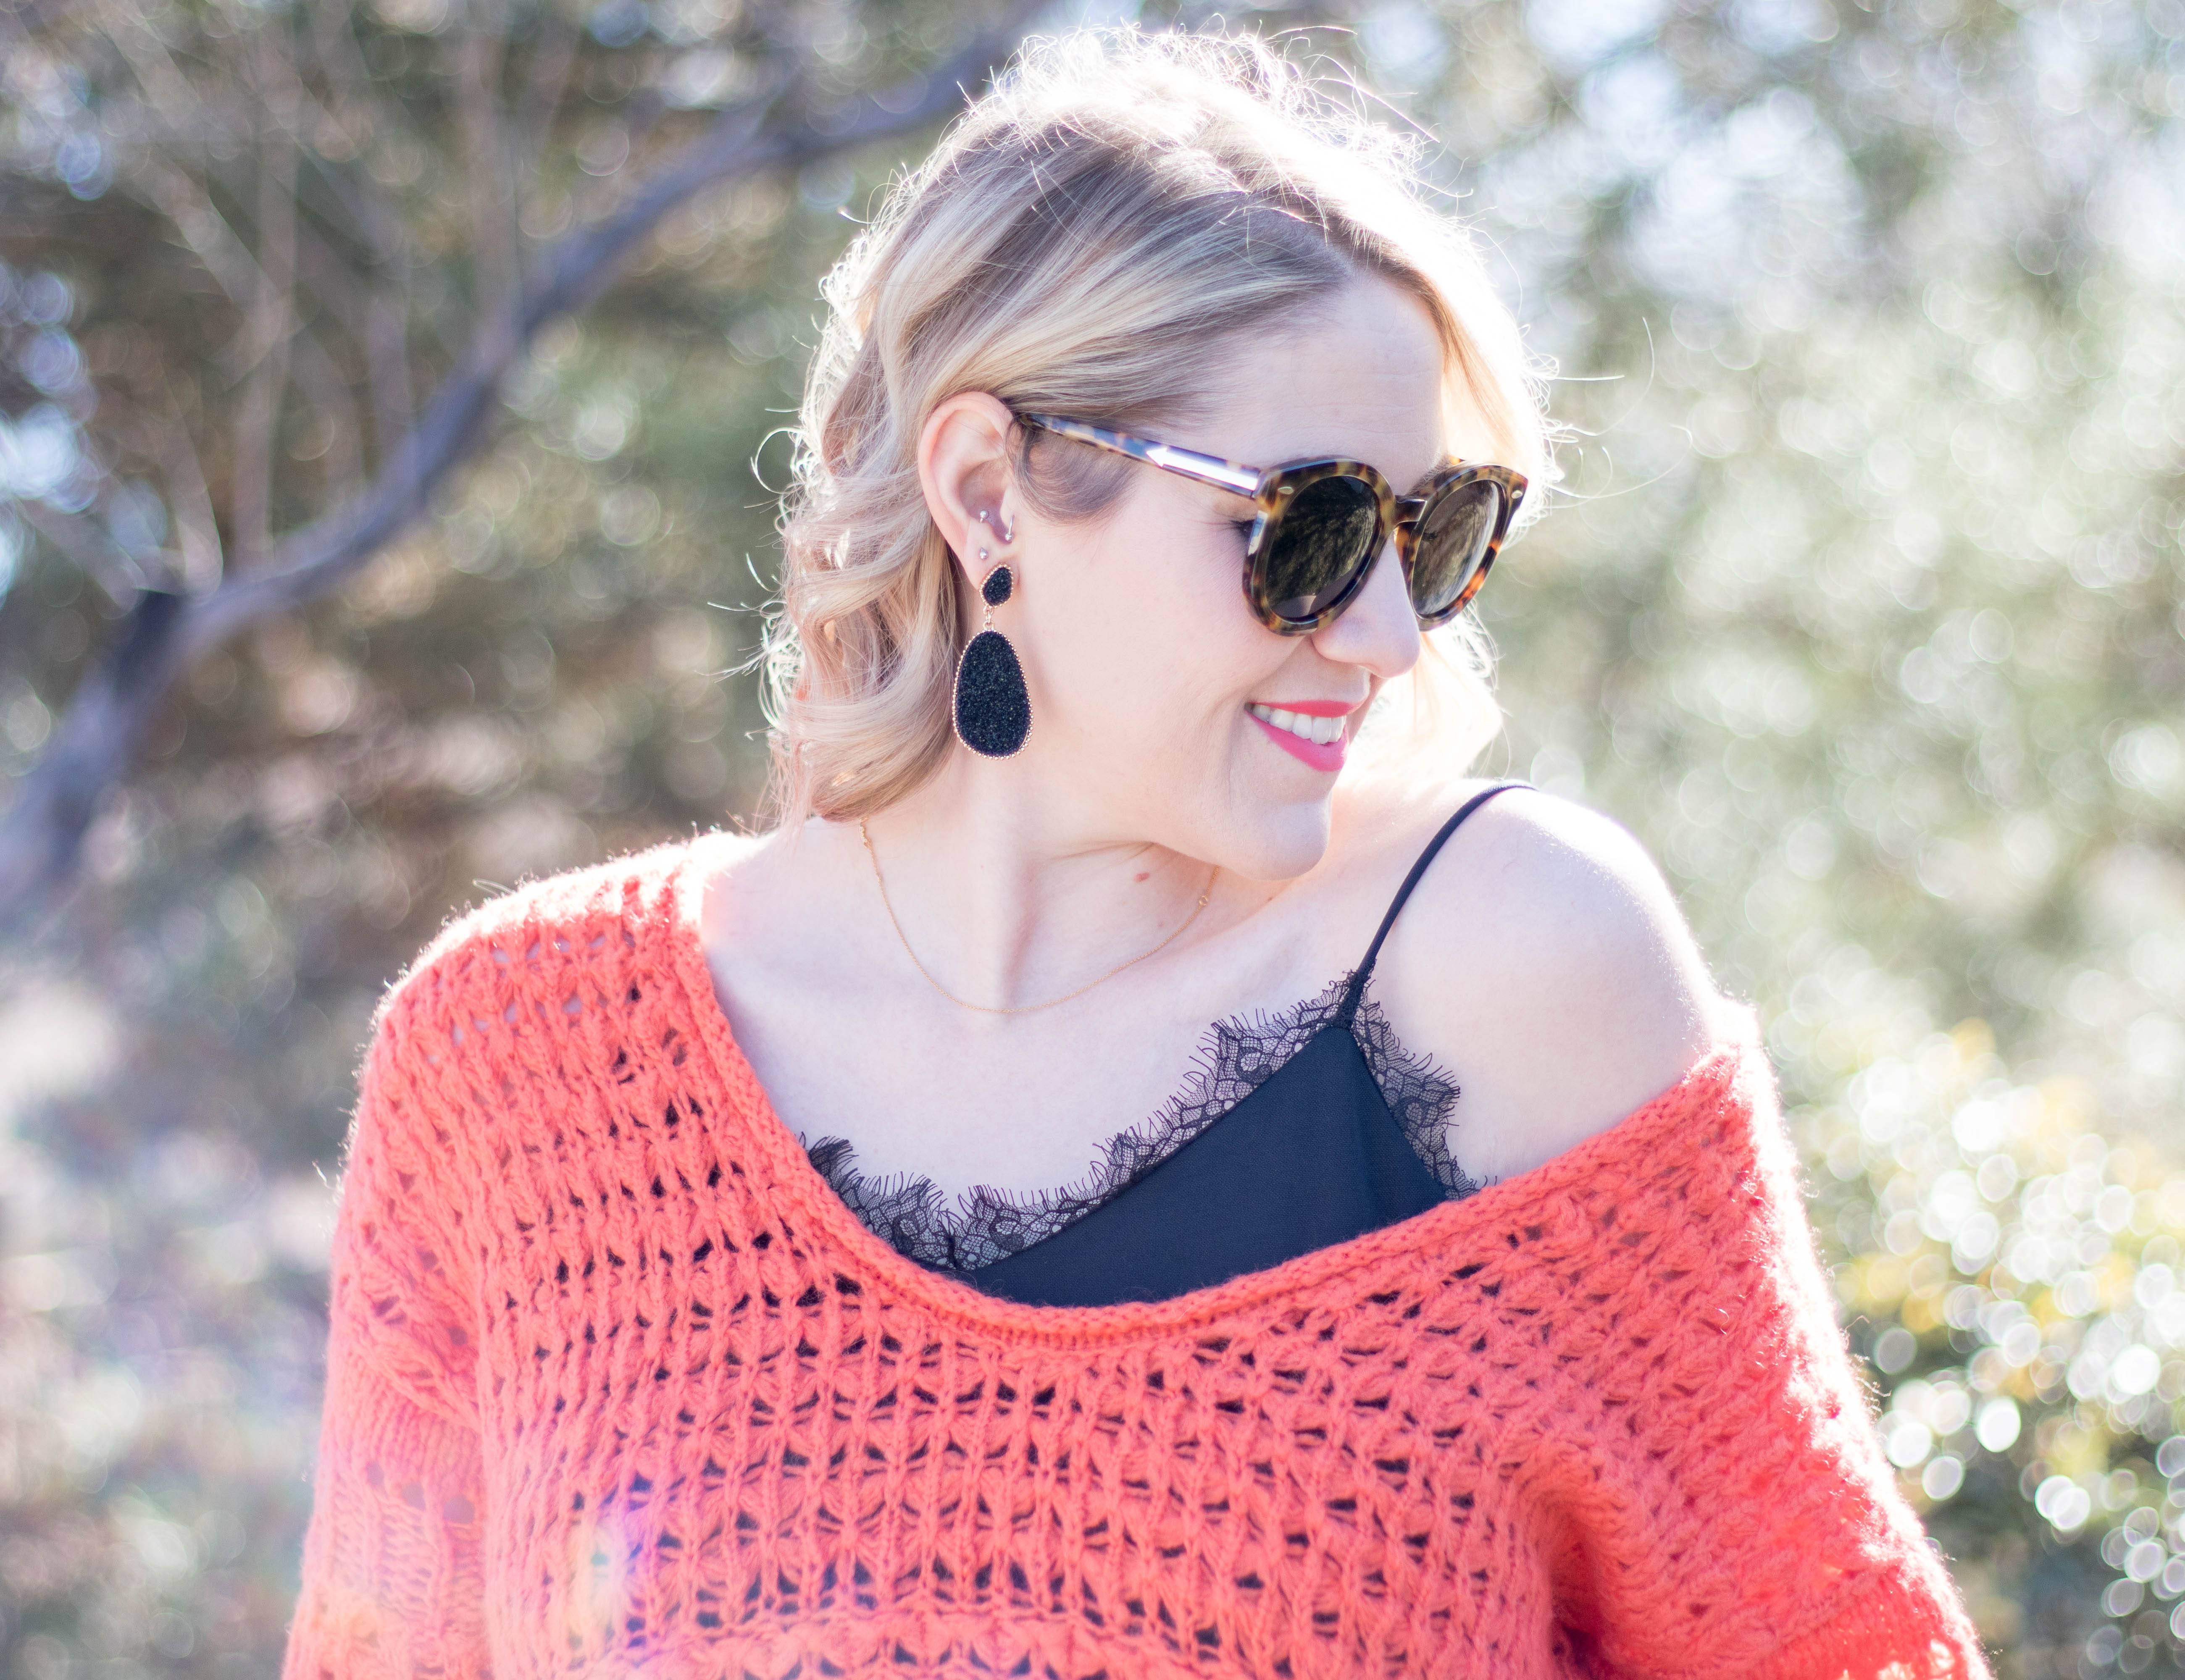 free people chunky sweater lace cami #winterstyle #winterlayers #outfitdetails